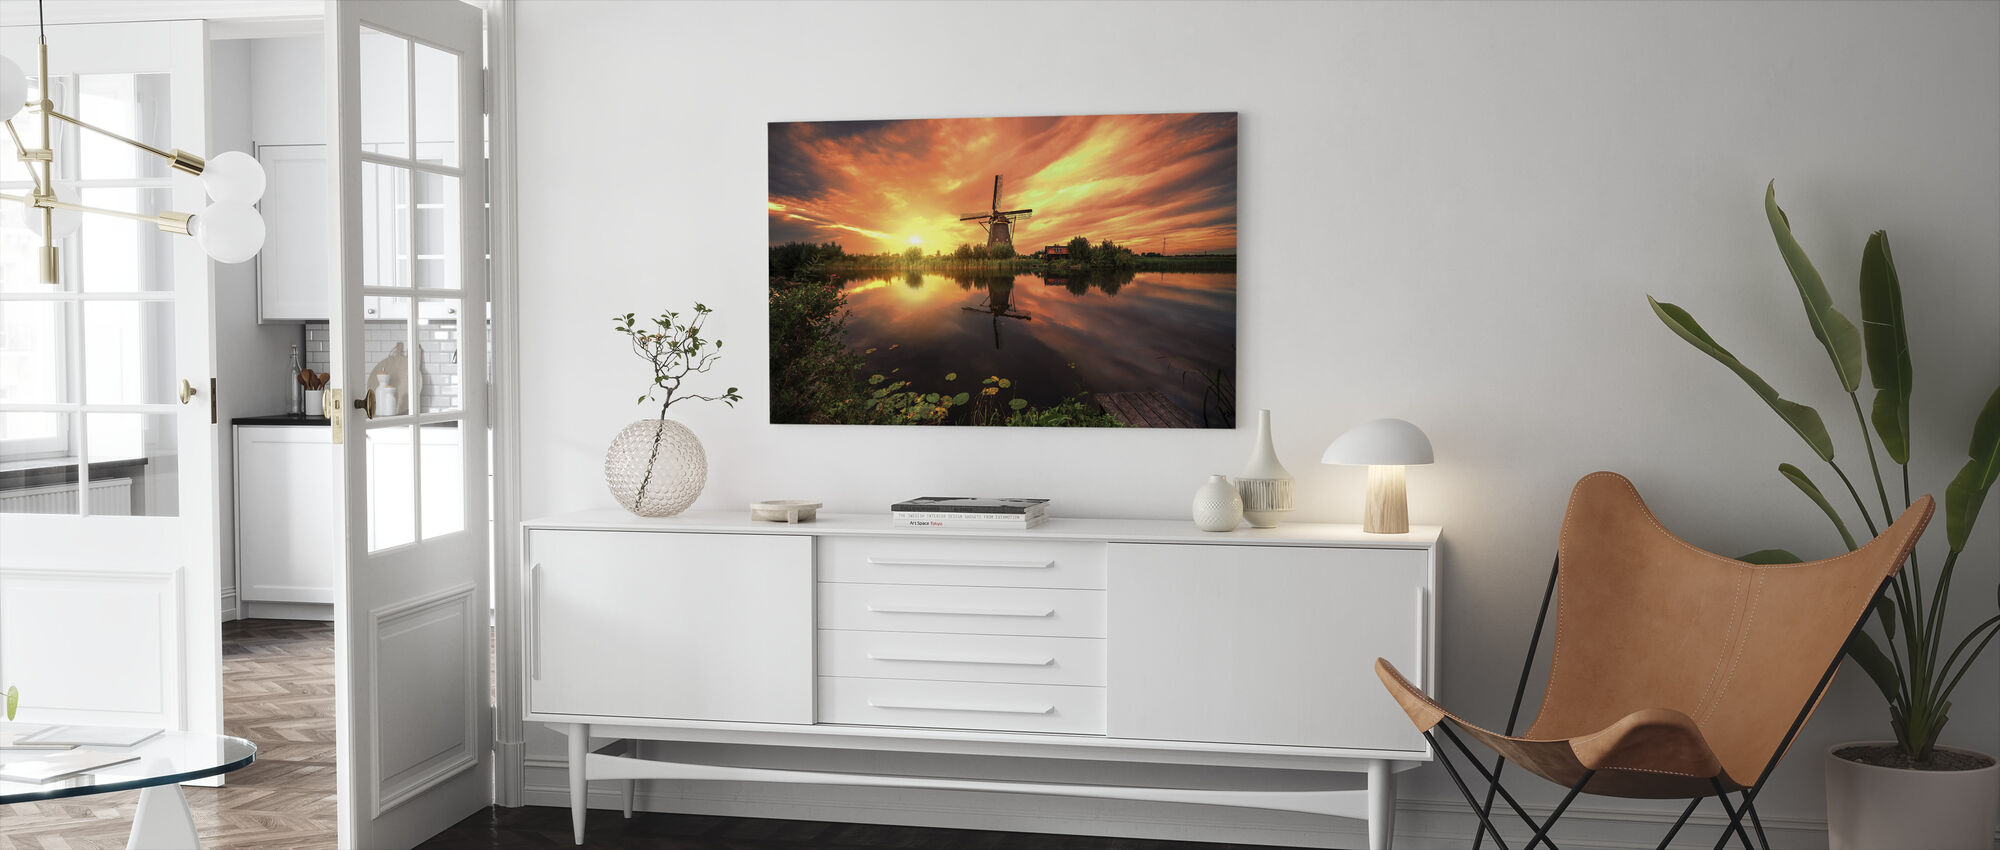 Kinderdijk Magic - Canvas print - Living Room